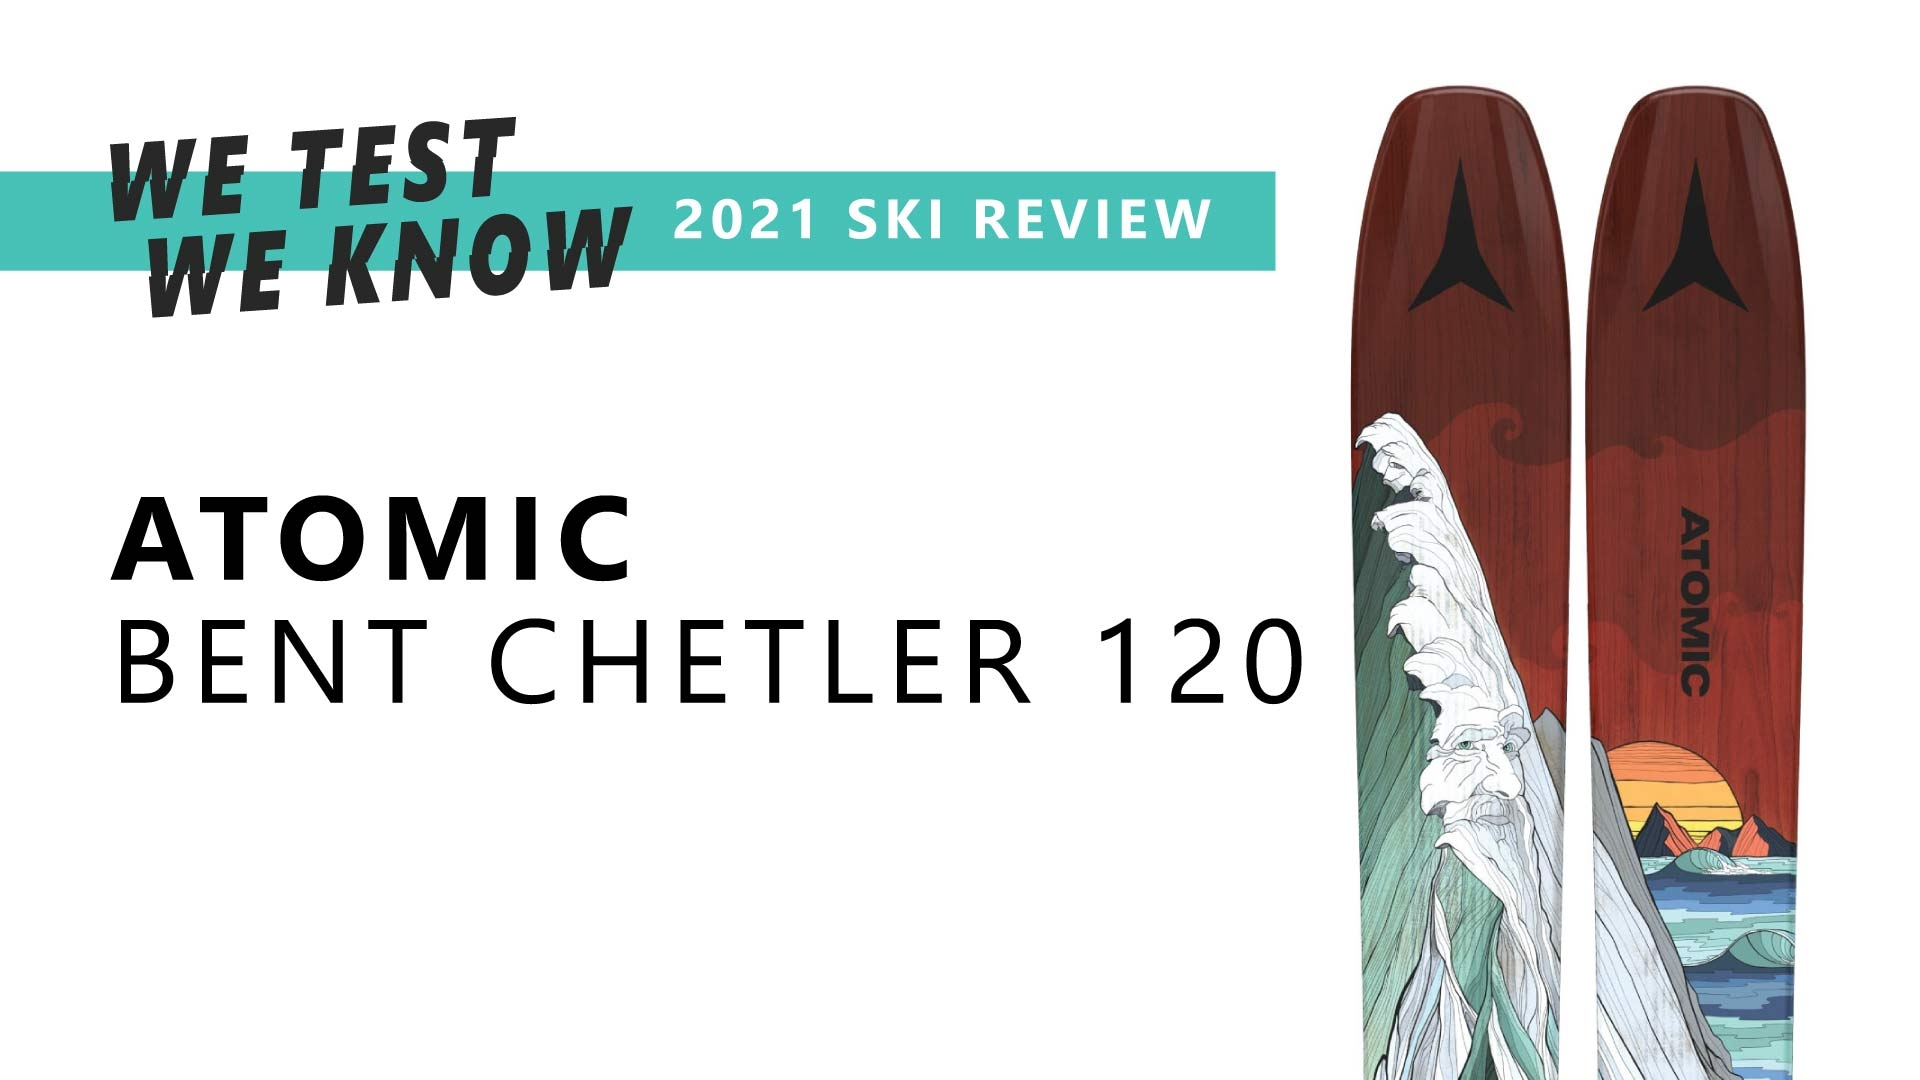 Atomic Bent Chetler 120 | 2021 Ski Review